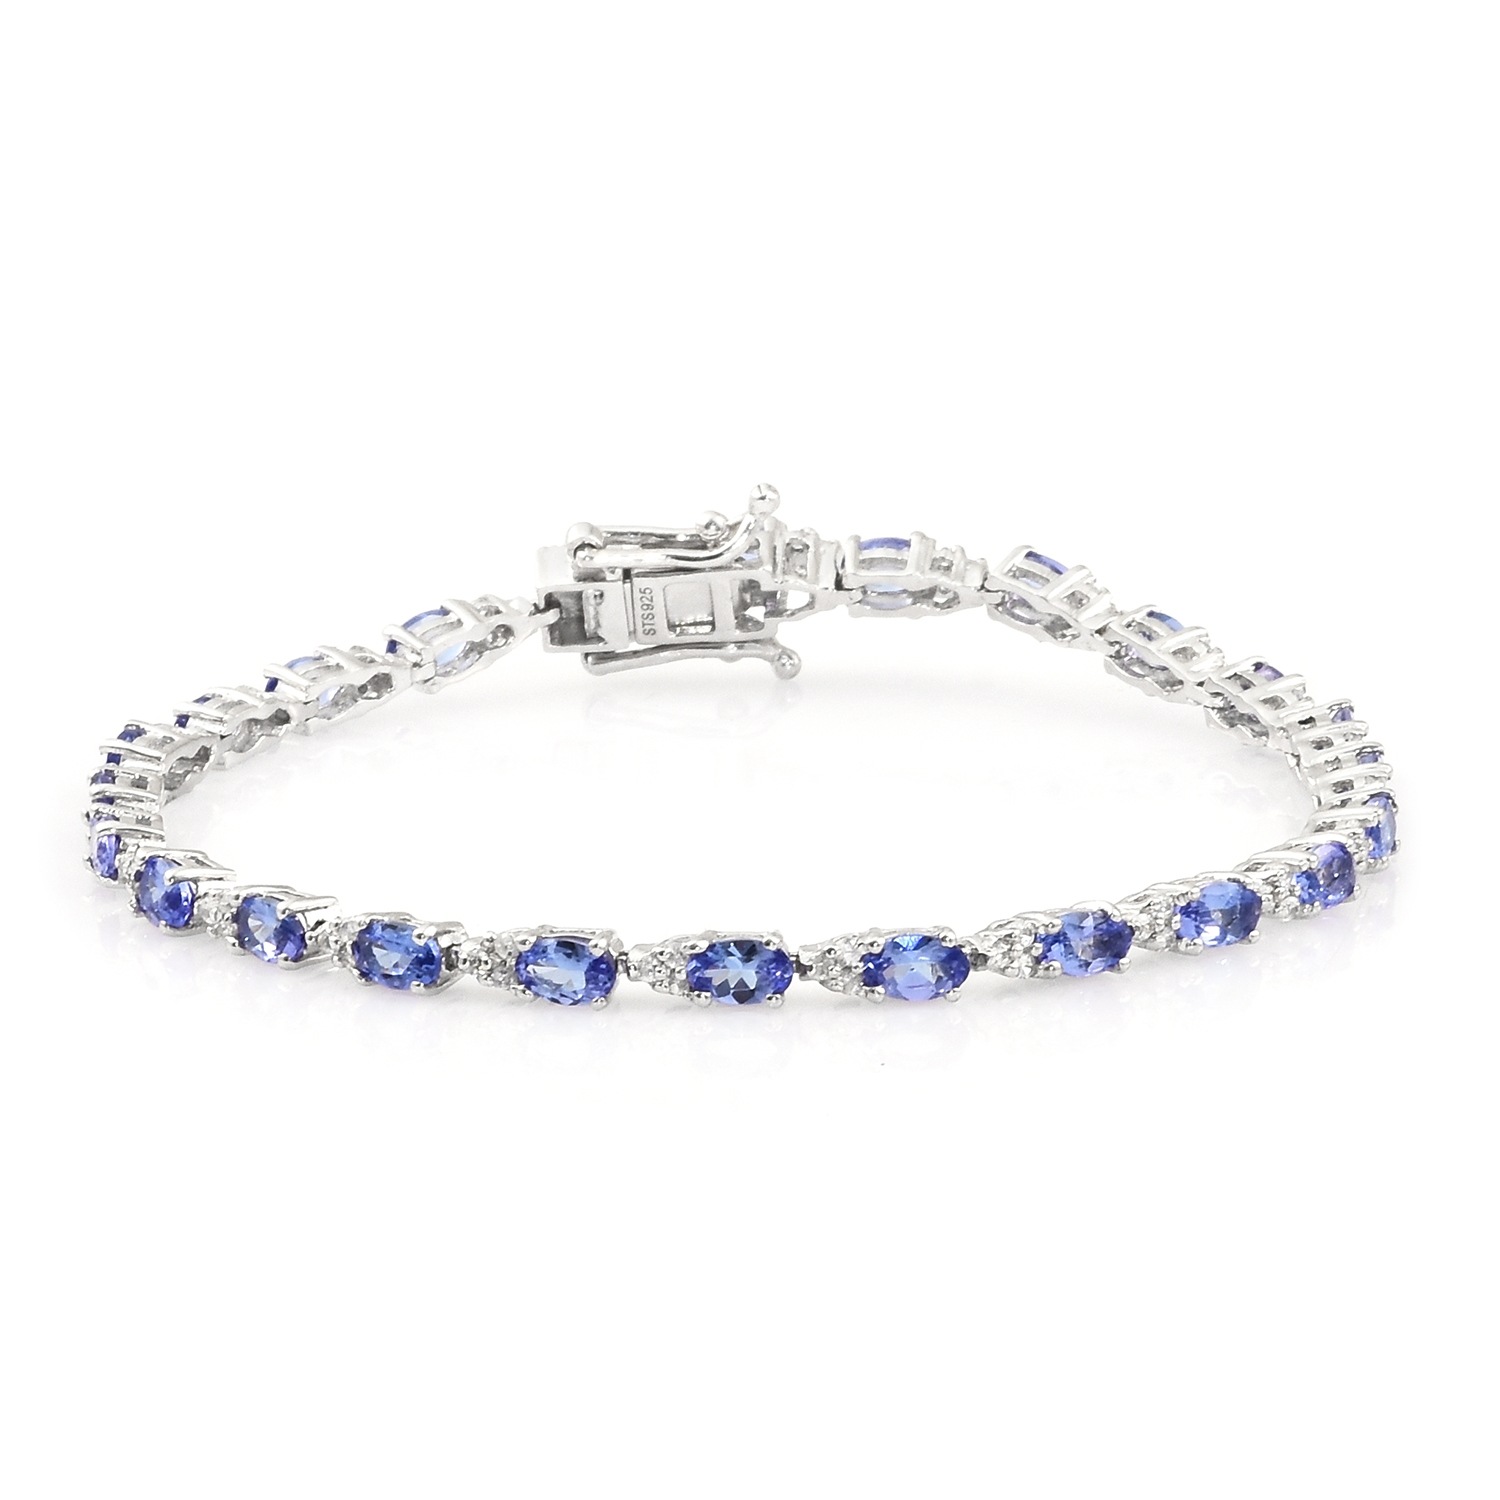 b brands gold blue tanzanite african bracelets tennis white in closeup bracelet jewellery set